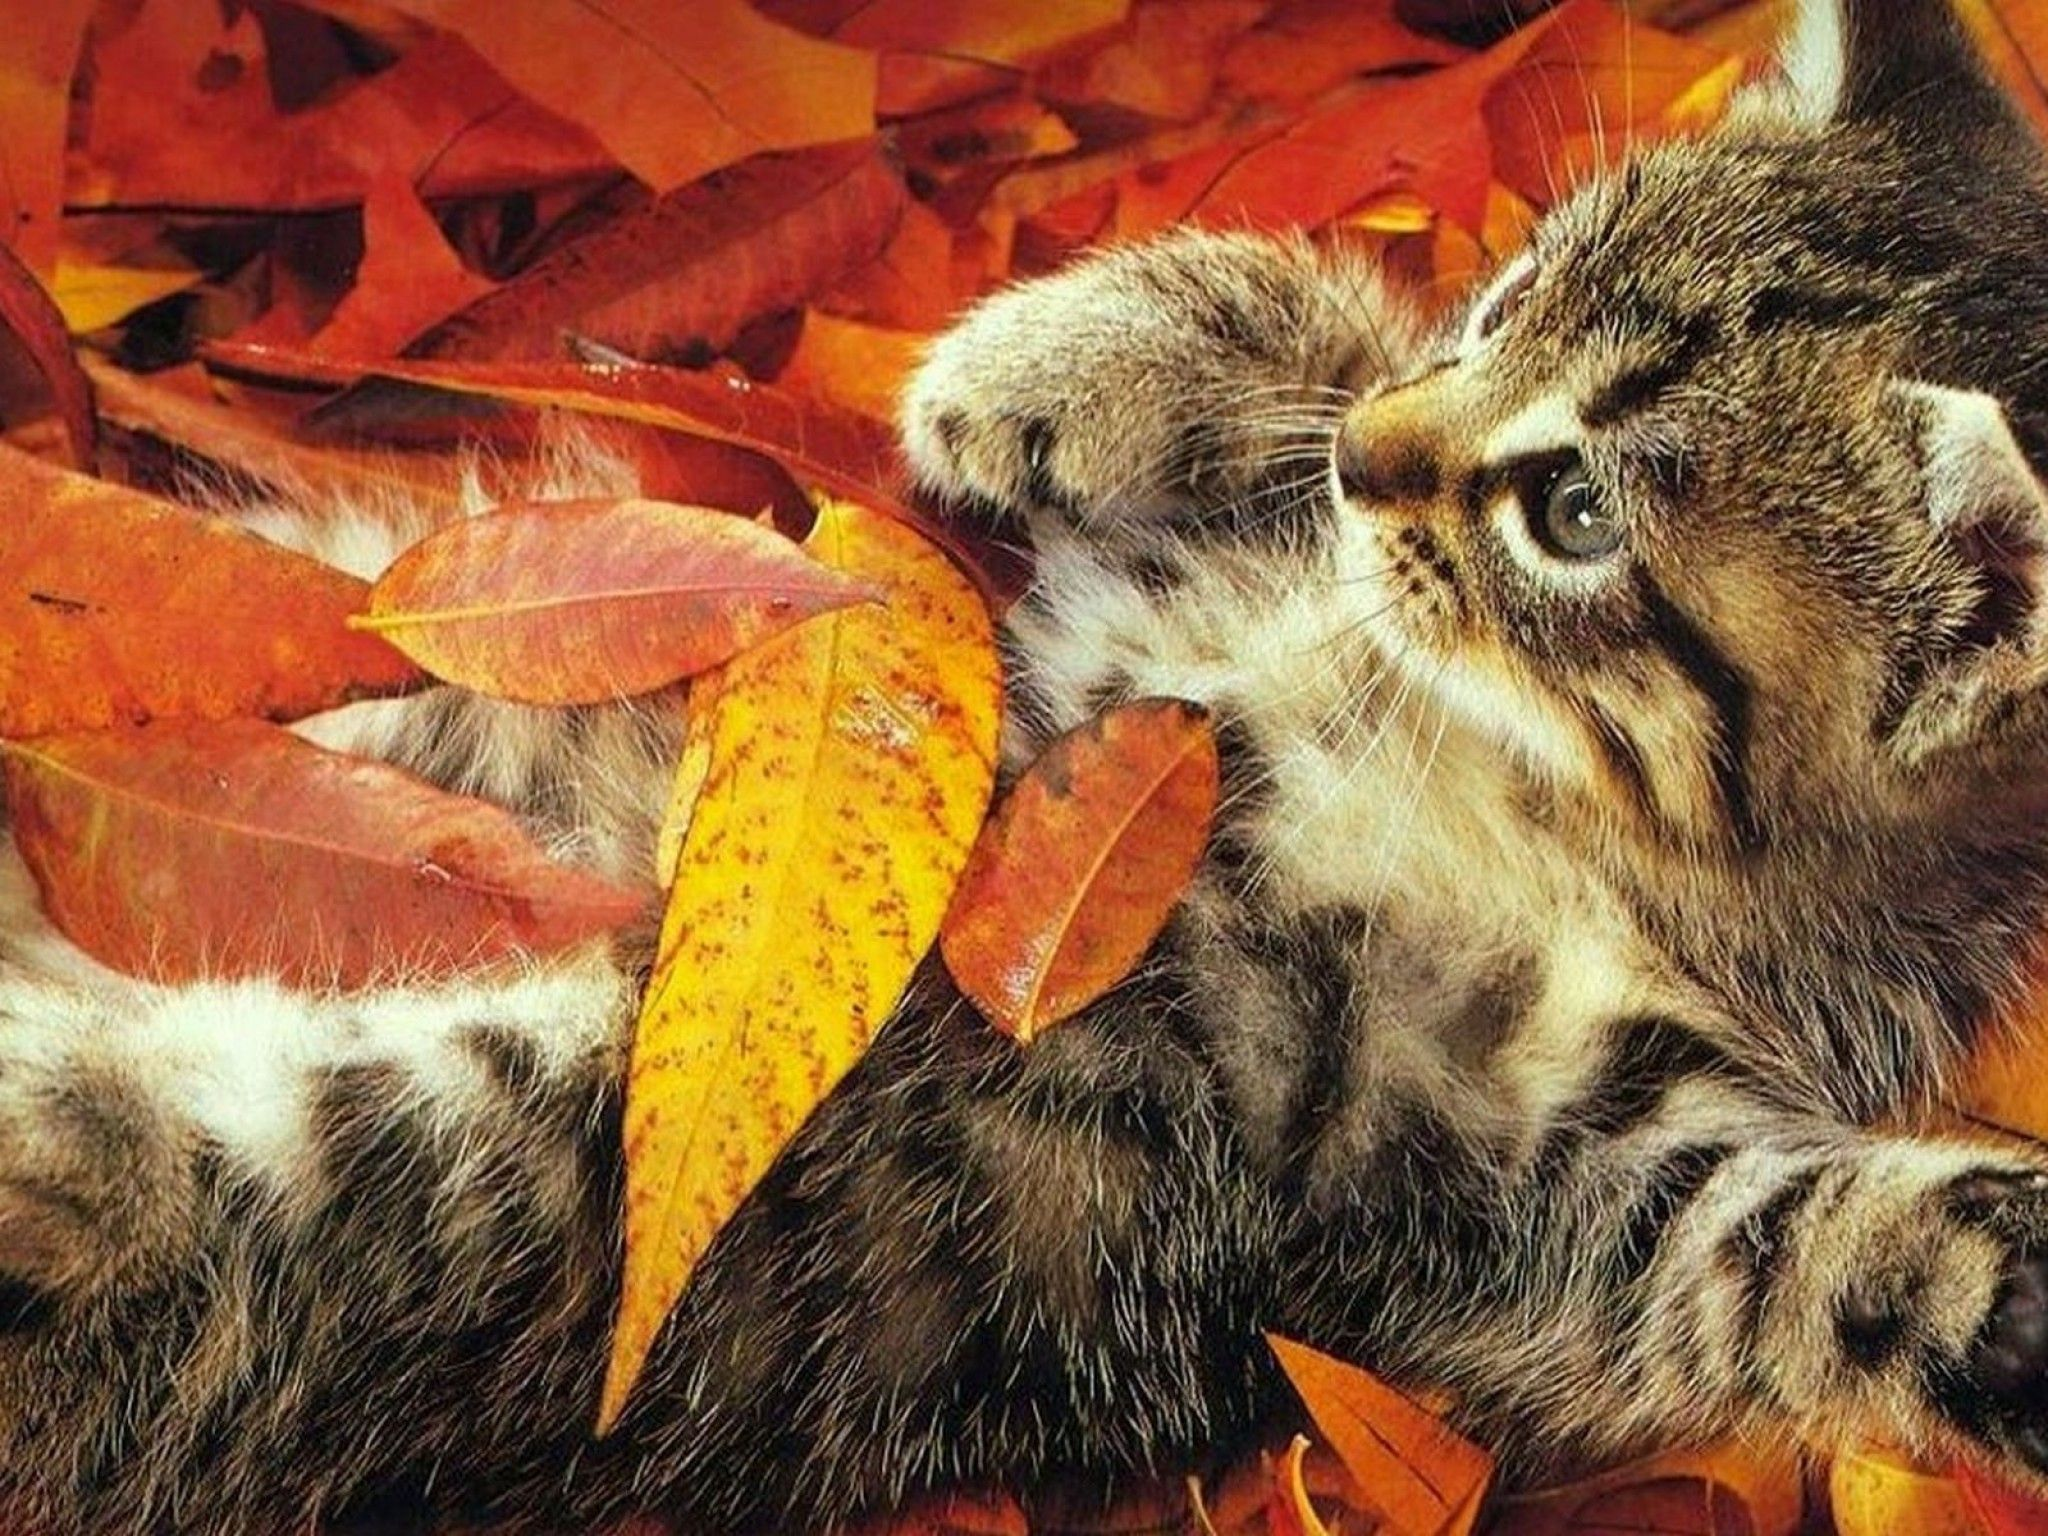 Autumn Cat Wallpaper Kitten Leaves Playful Wallpapers Mag Autumn Animals Cats And Kittens Cats